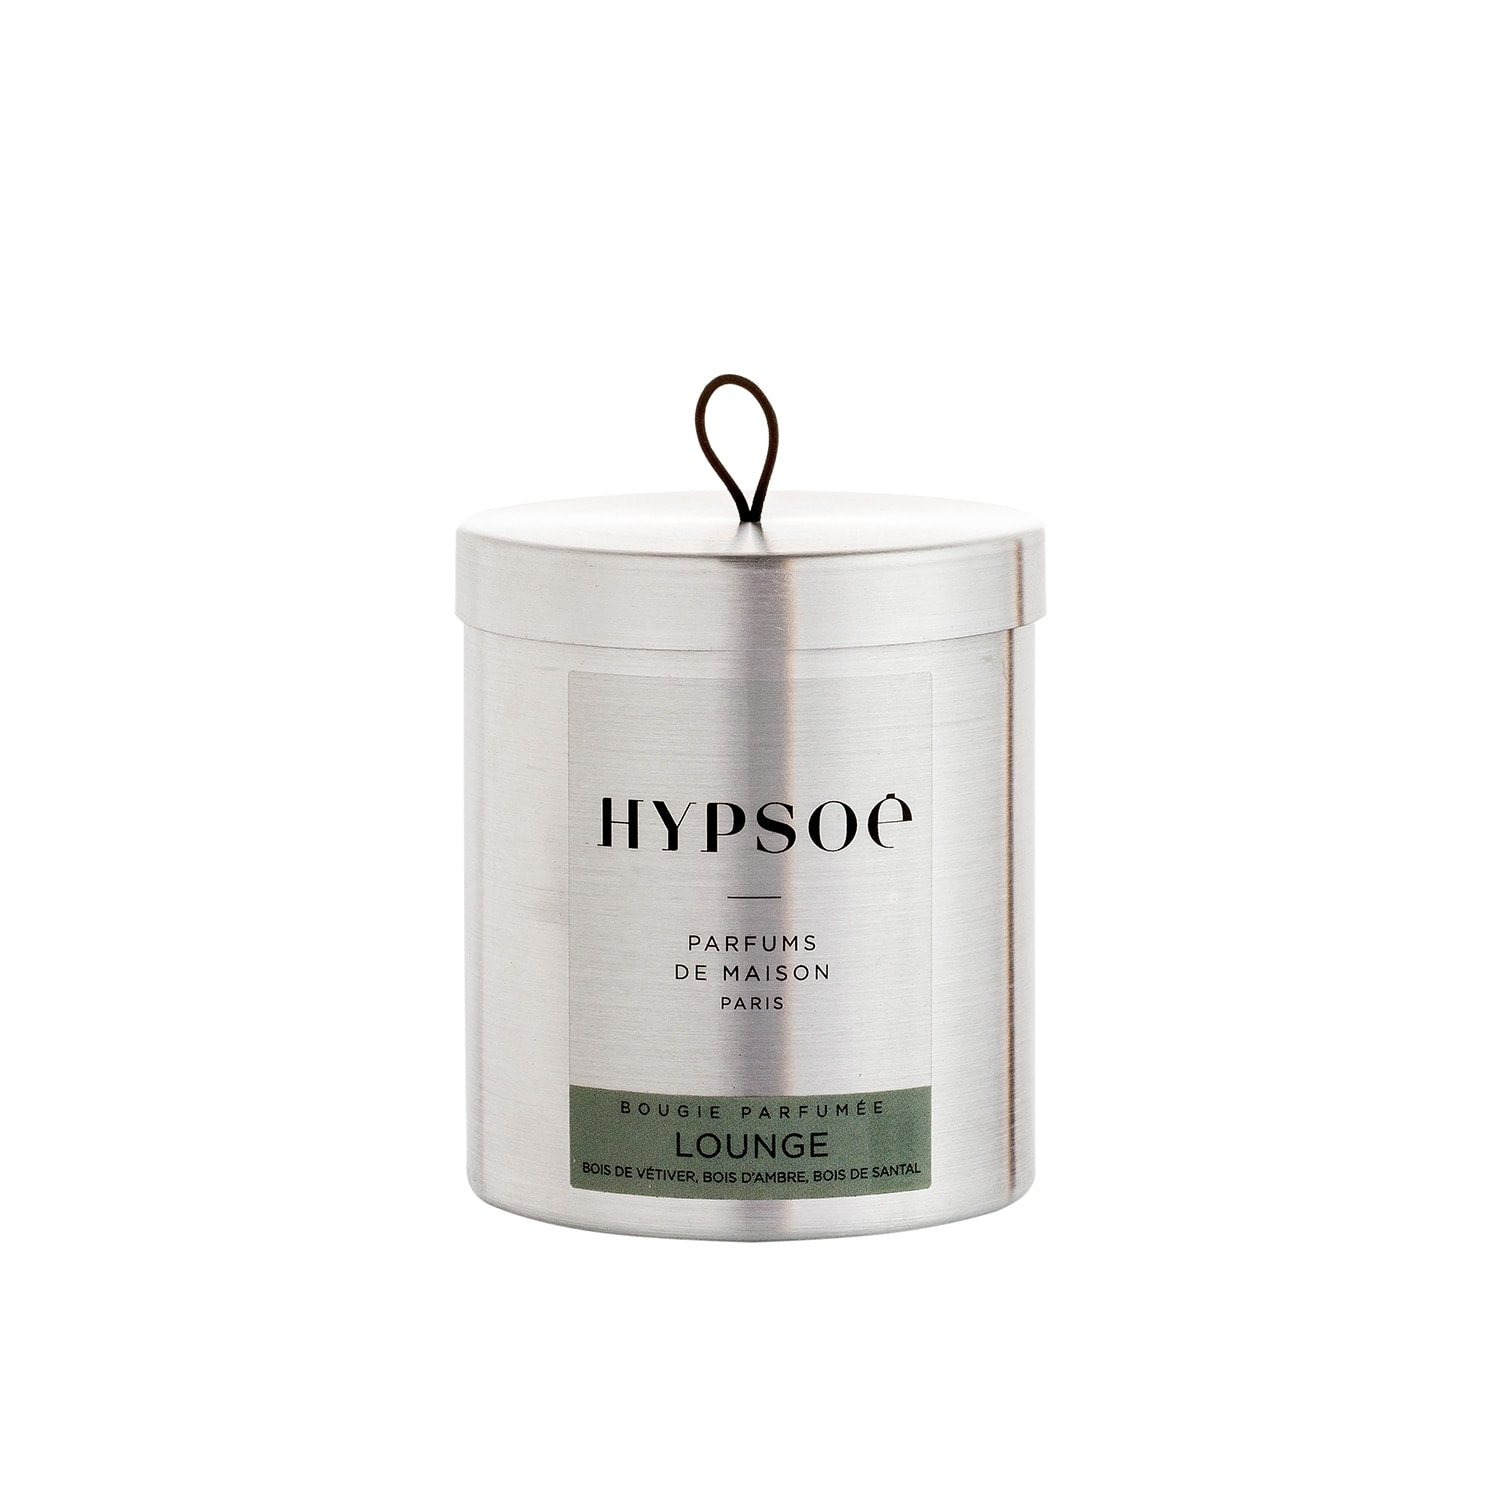 Hypsoe Scented Candle in Metal Tin – Lounge